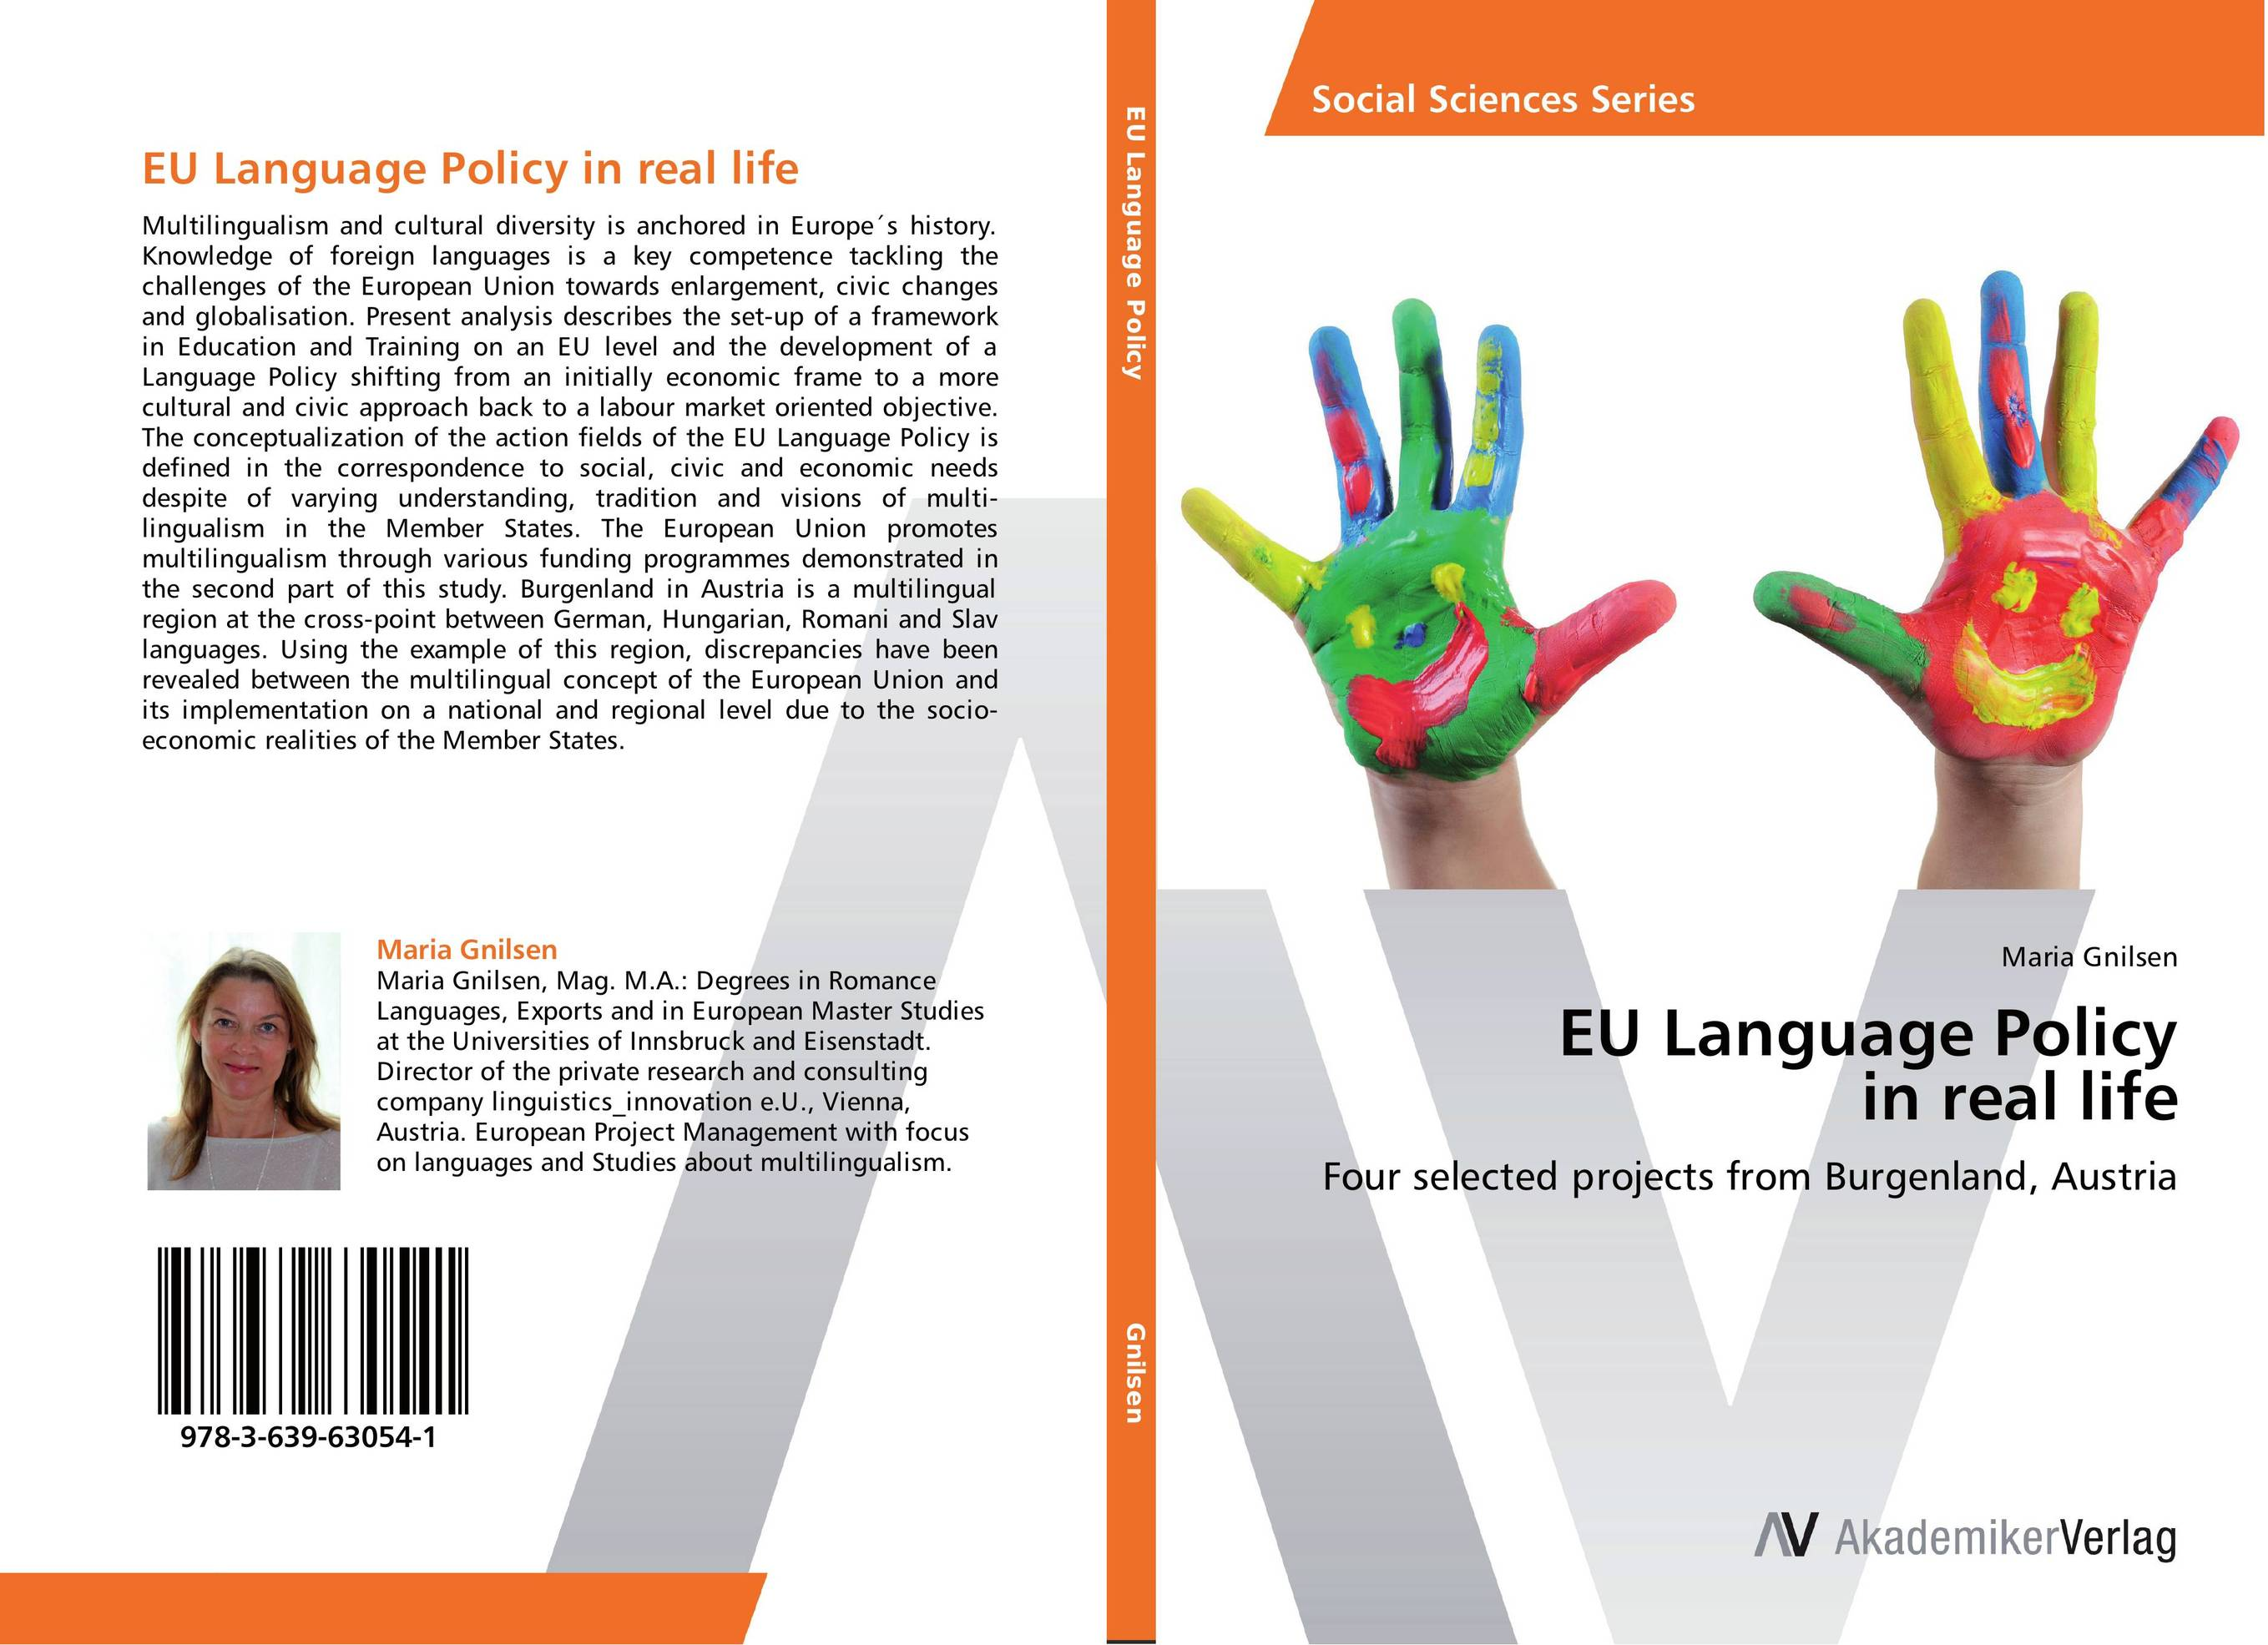 EU Language Policy in real life bertsch power and policy in communist systems paper only